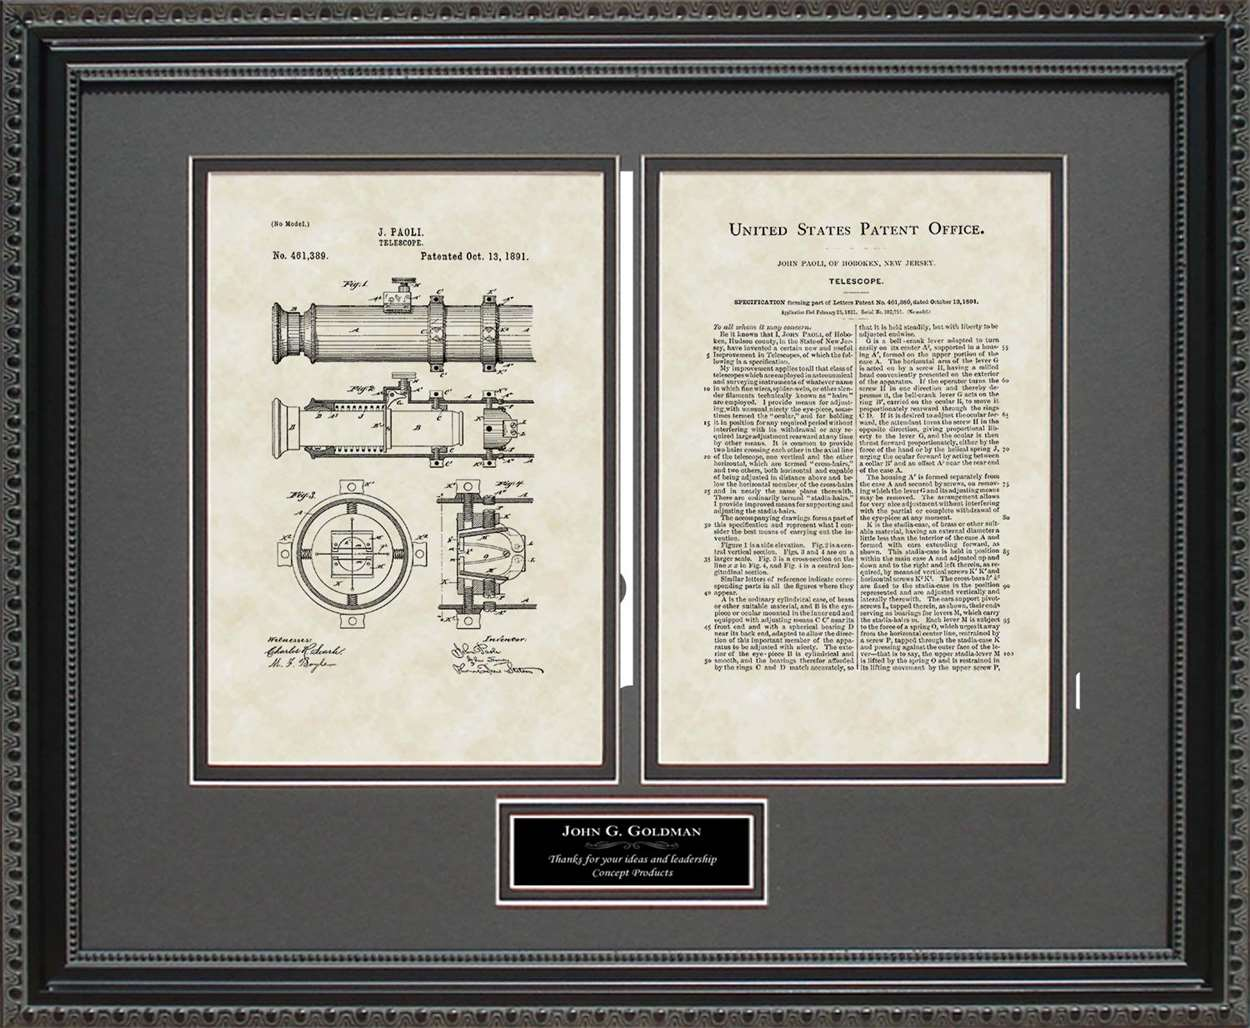 Personalized Telescope Patent, Art & Copy, Paoli, 1891